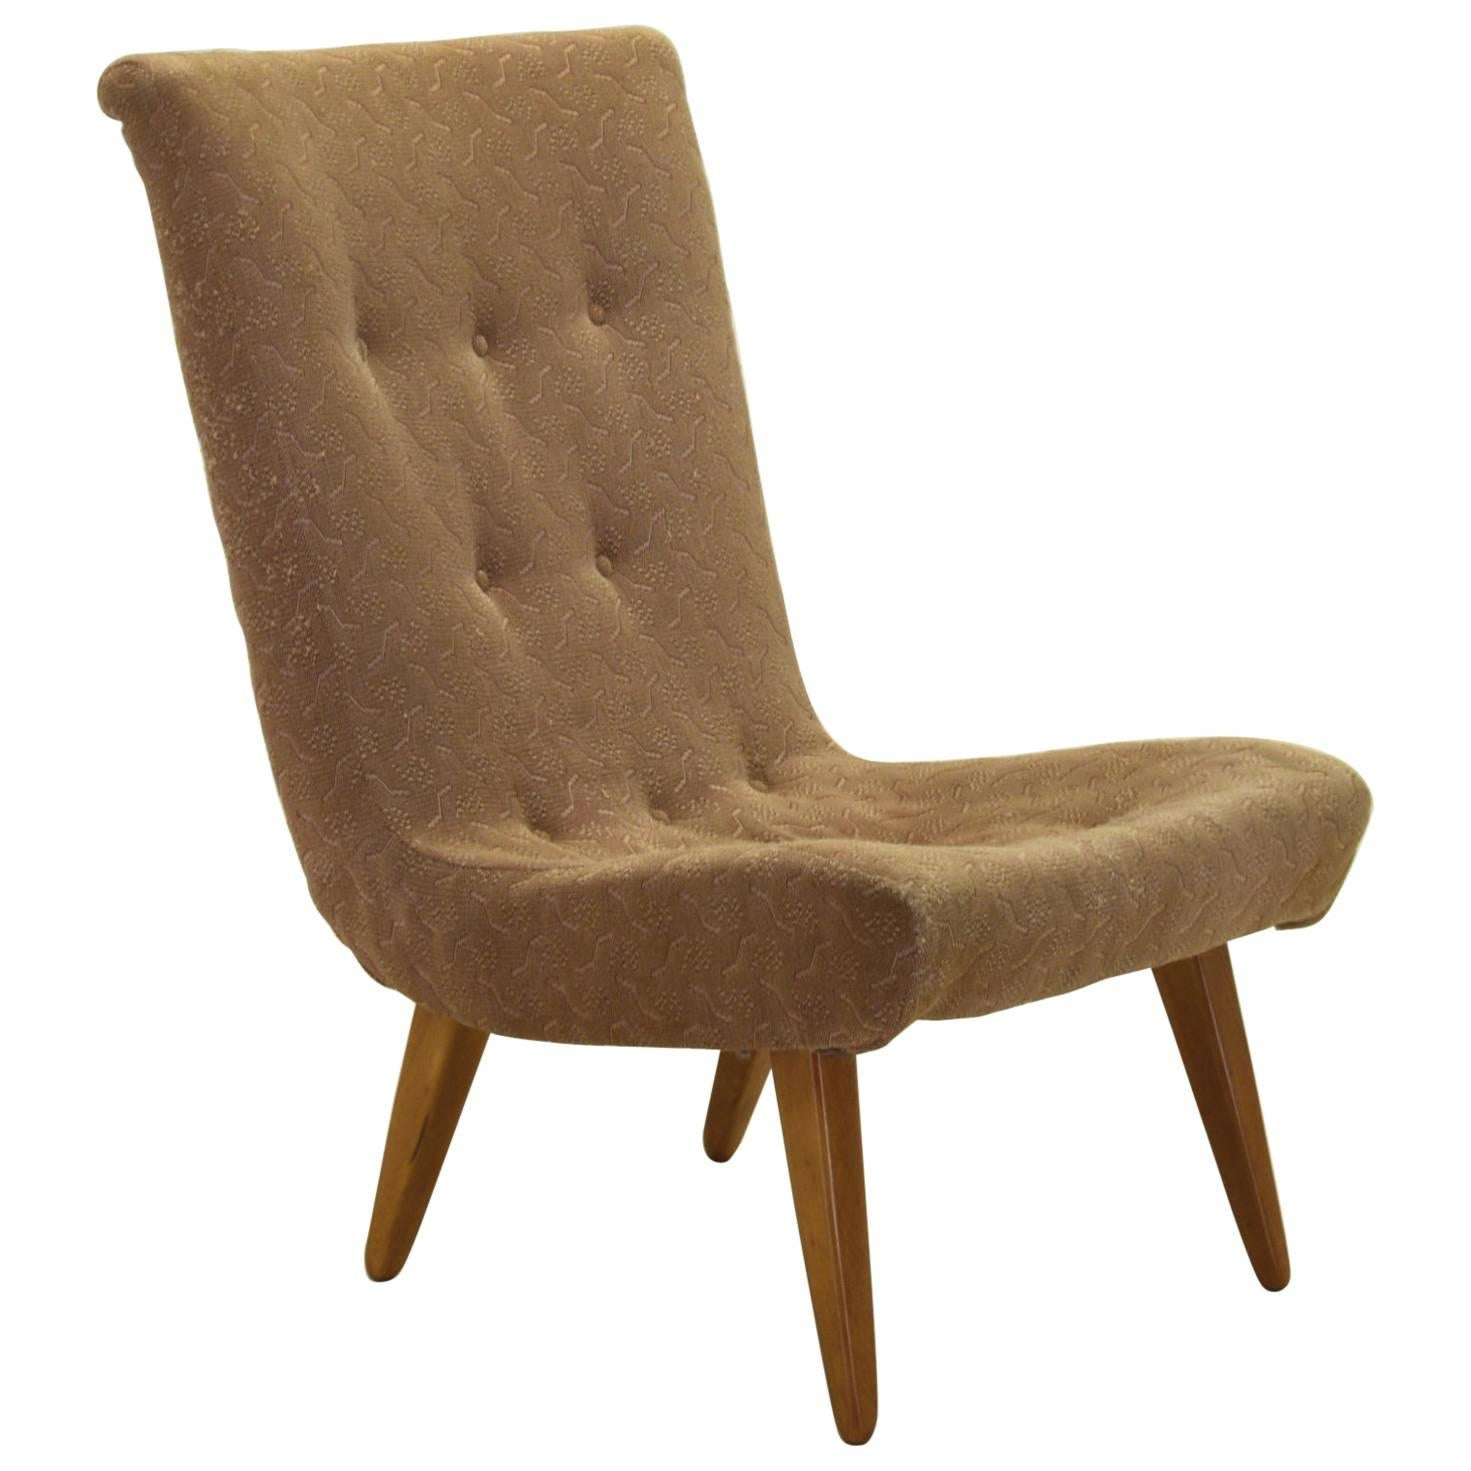 Danish Lounge Scoop Chair after Philip Arctander